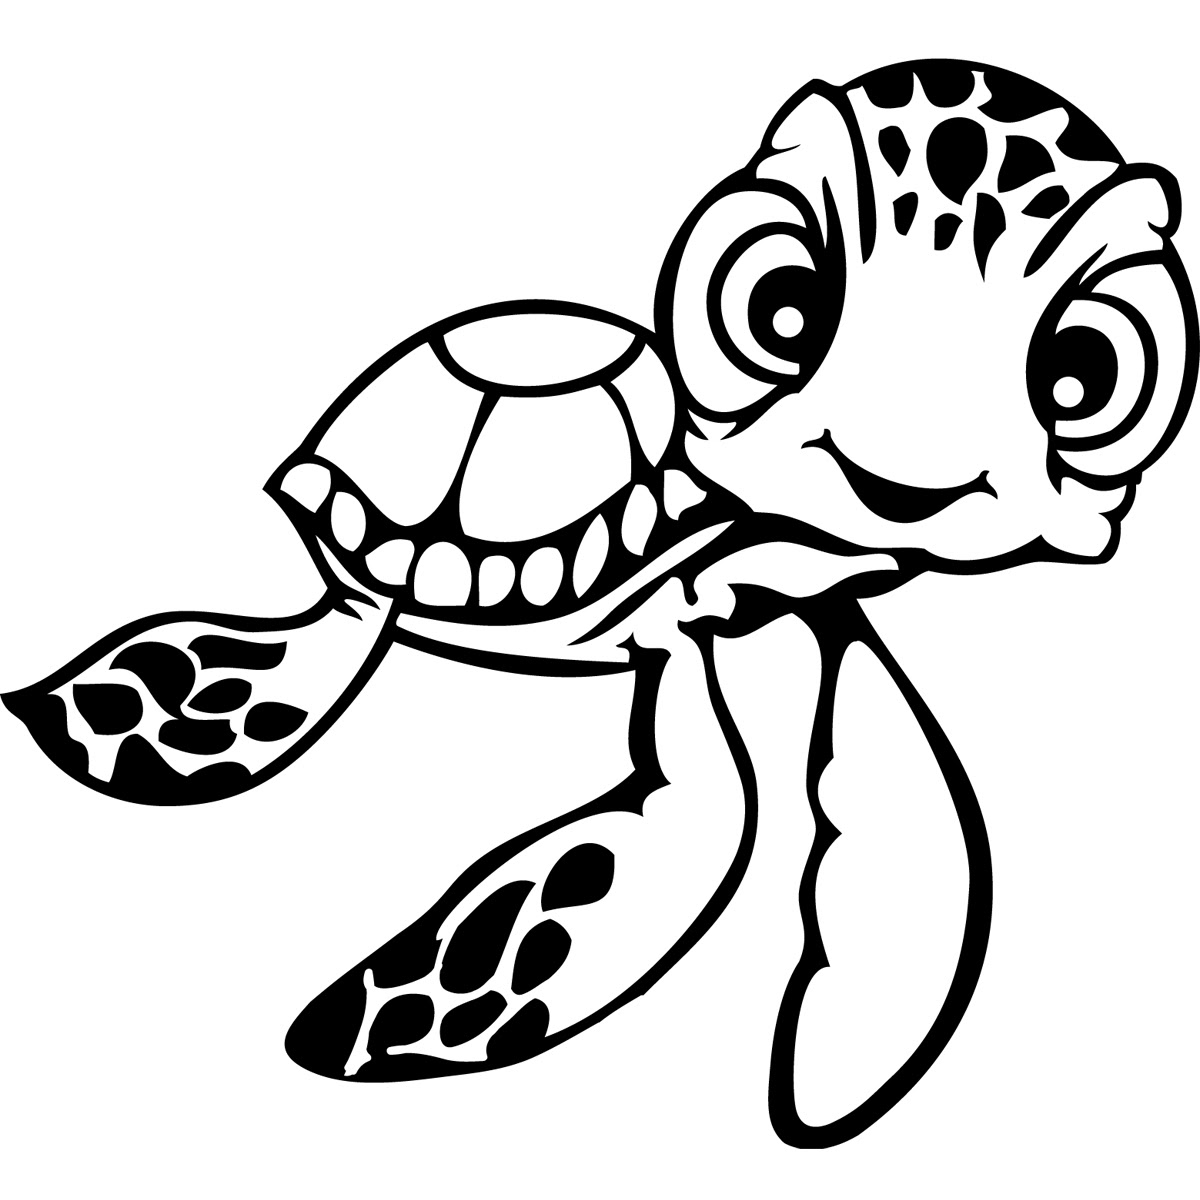 Detailed Turtle Coloring Pages at GetColorings.com   Free ...